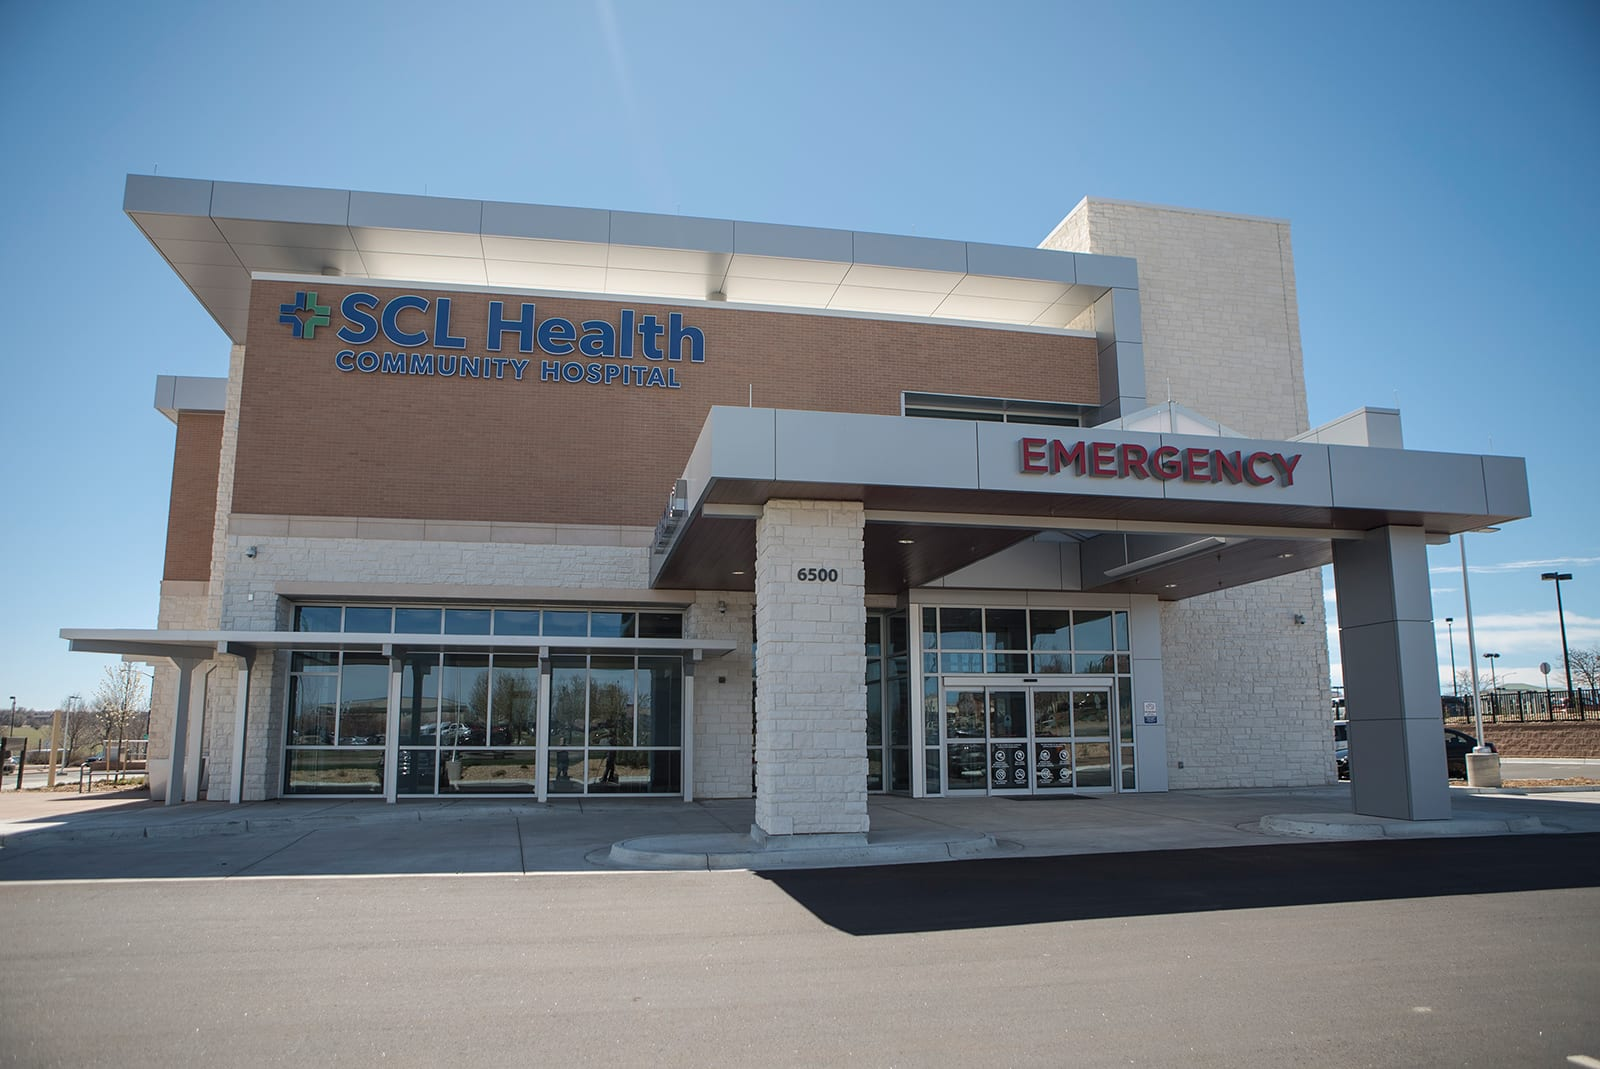 A look at the SCL-Emerus community hospital in Westminster